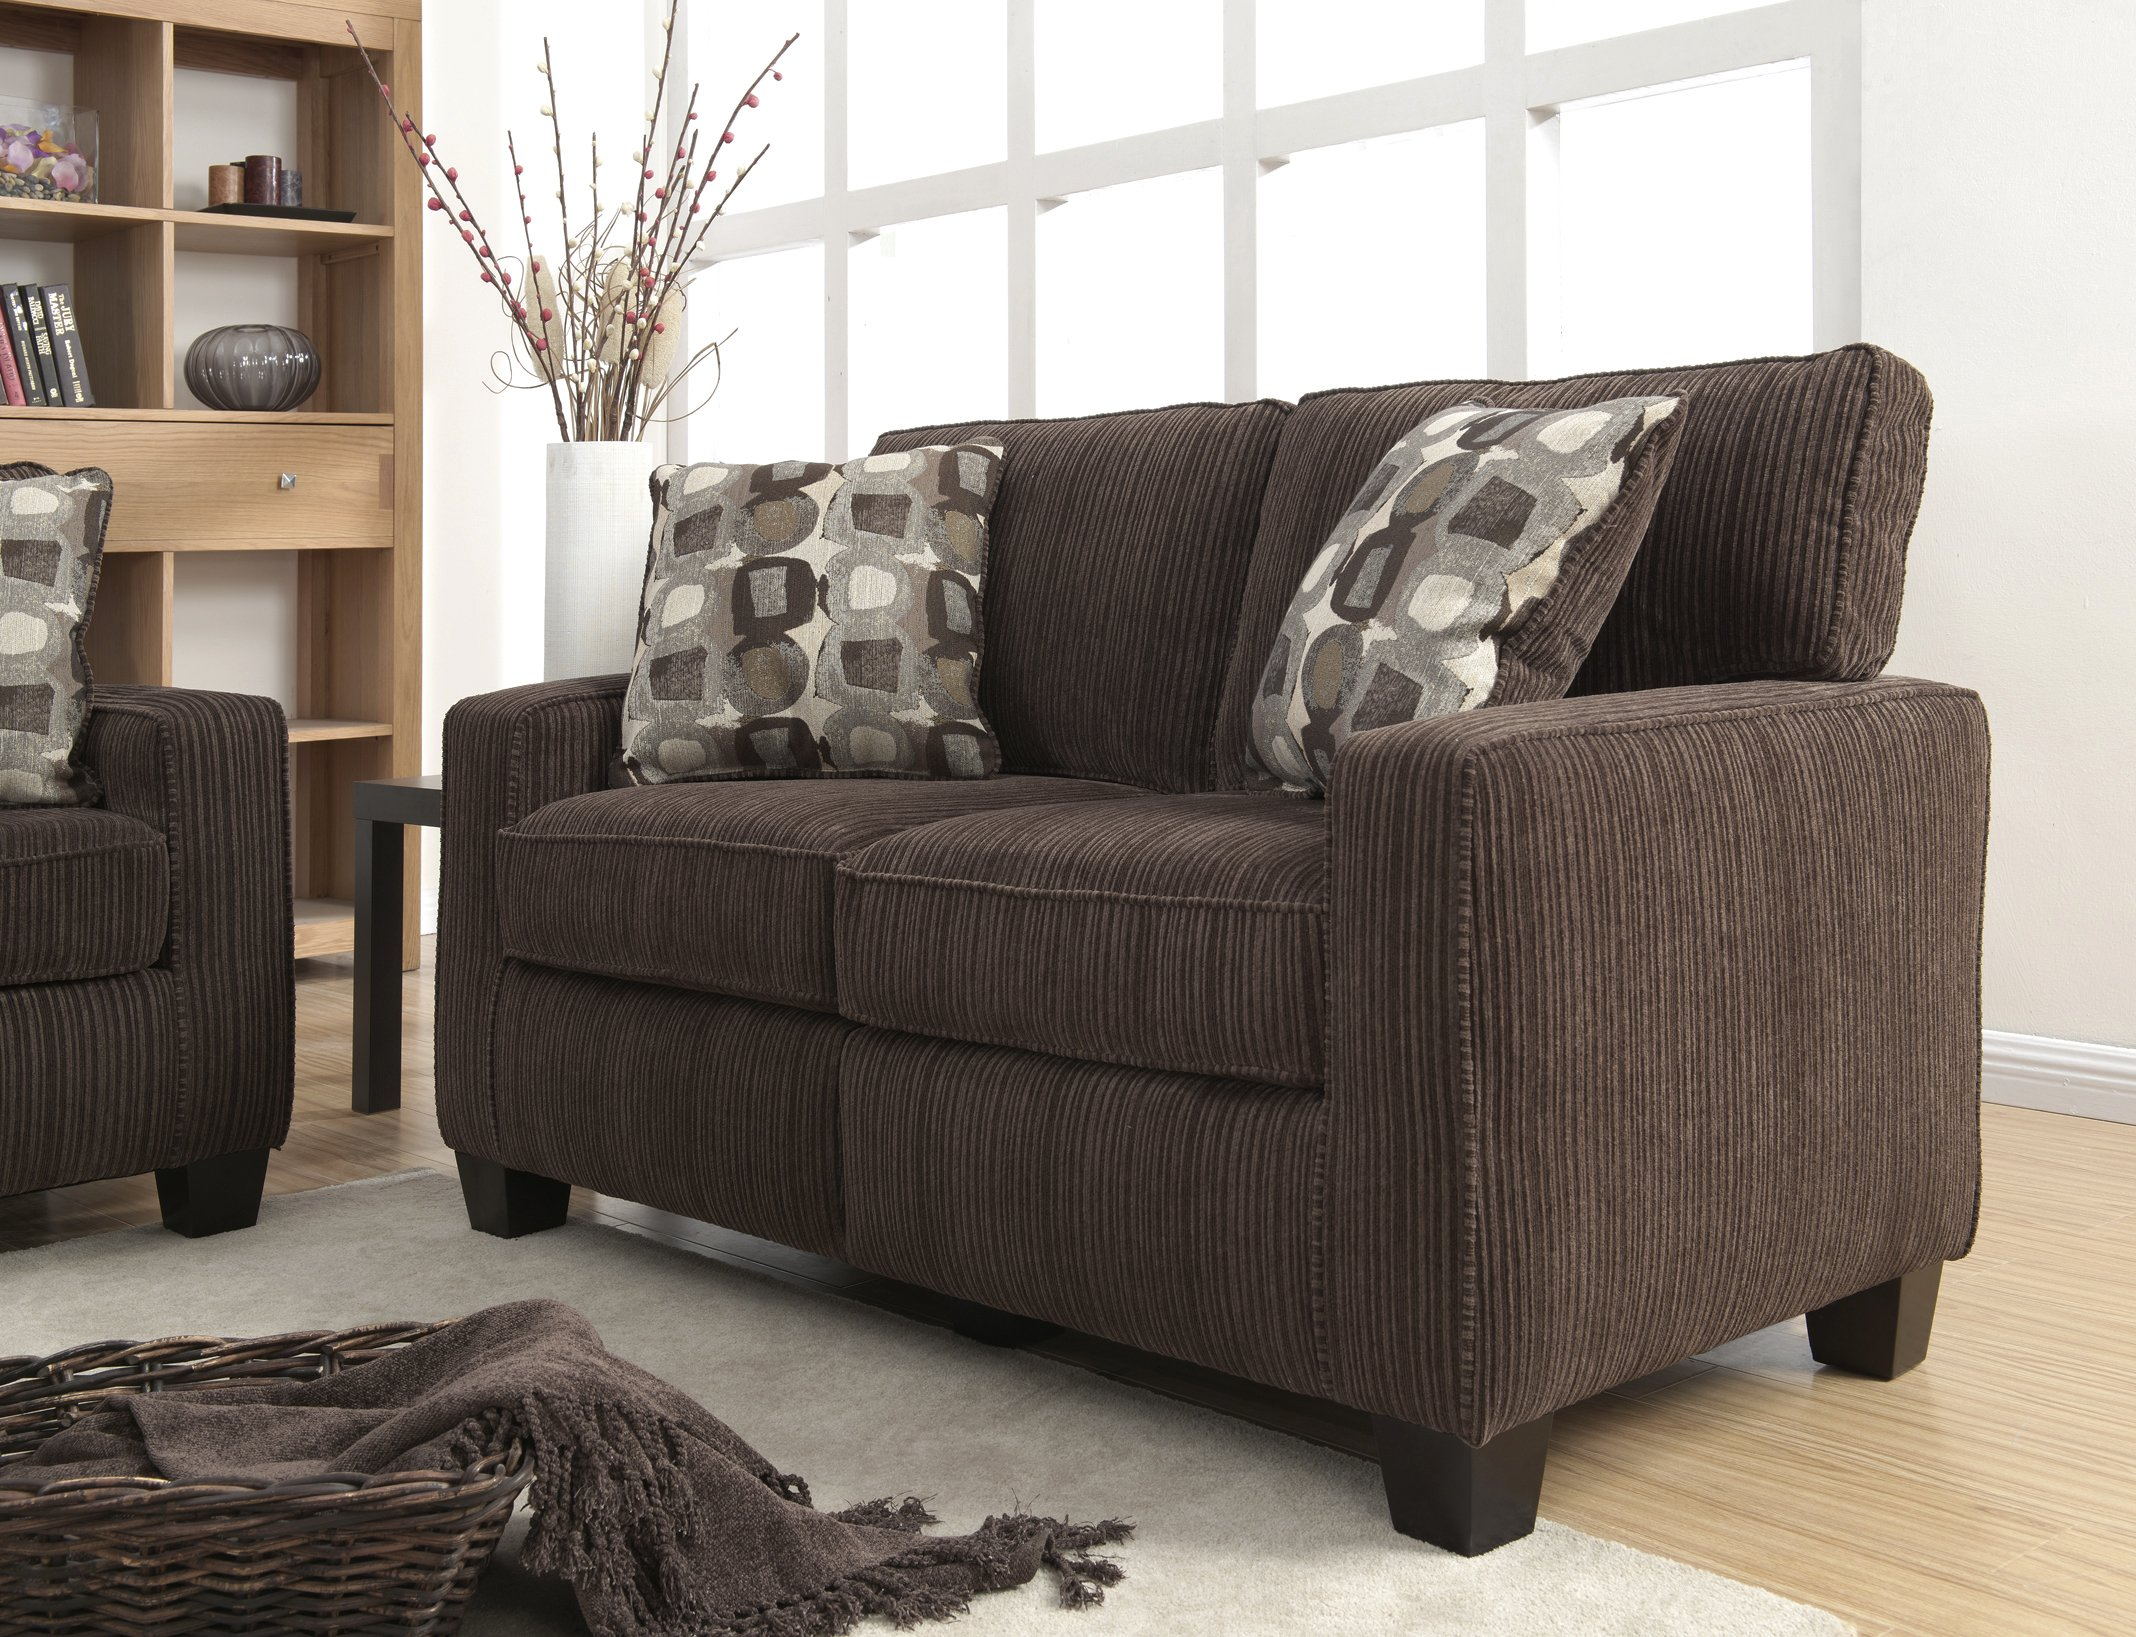 Serta RTA Palisades Collection 61'' Loveseat in Riverfront Brown by Serta (Image #1)